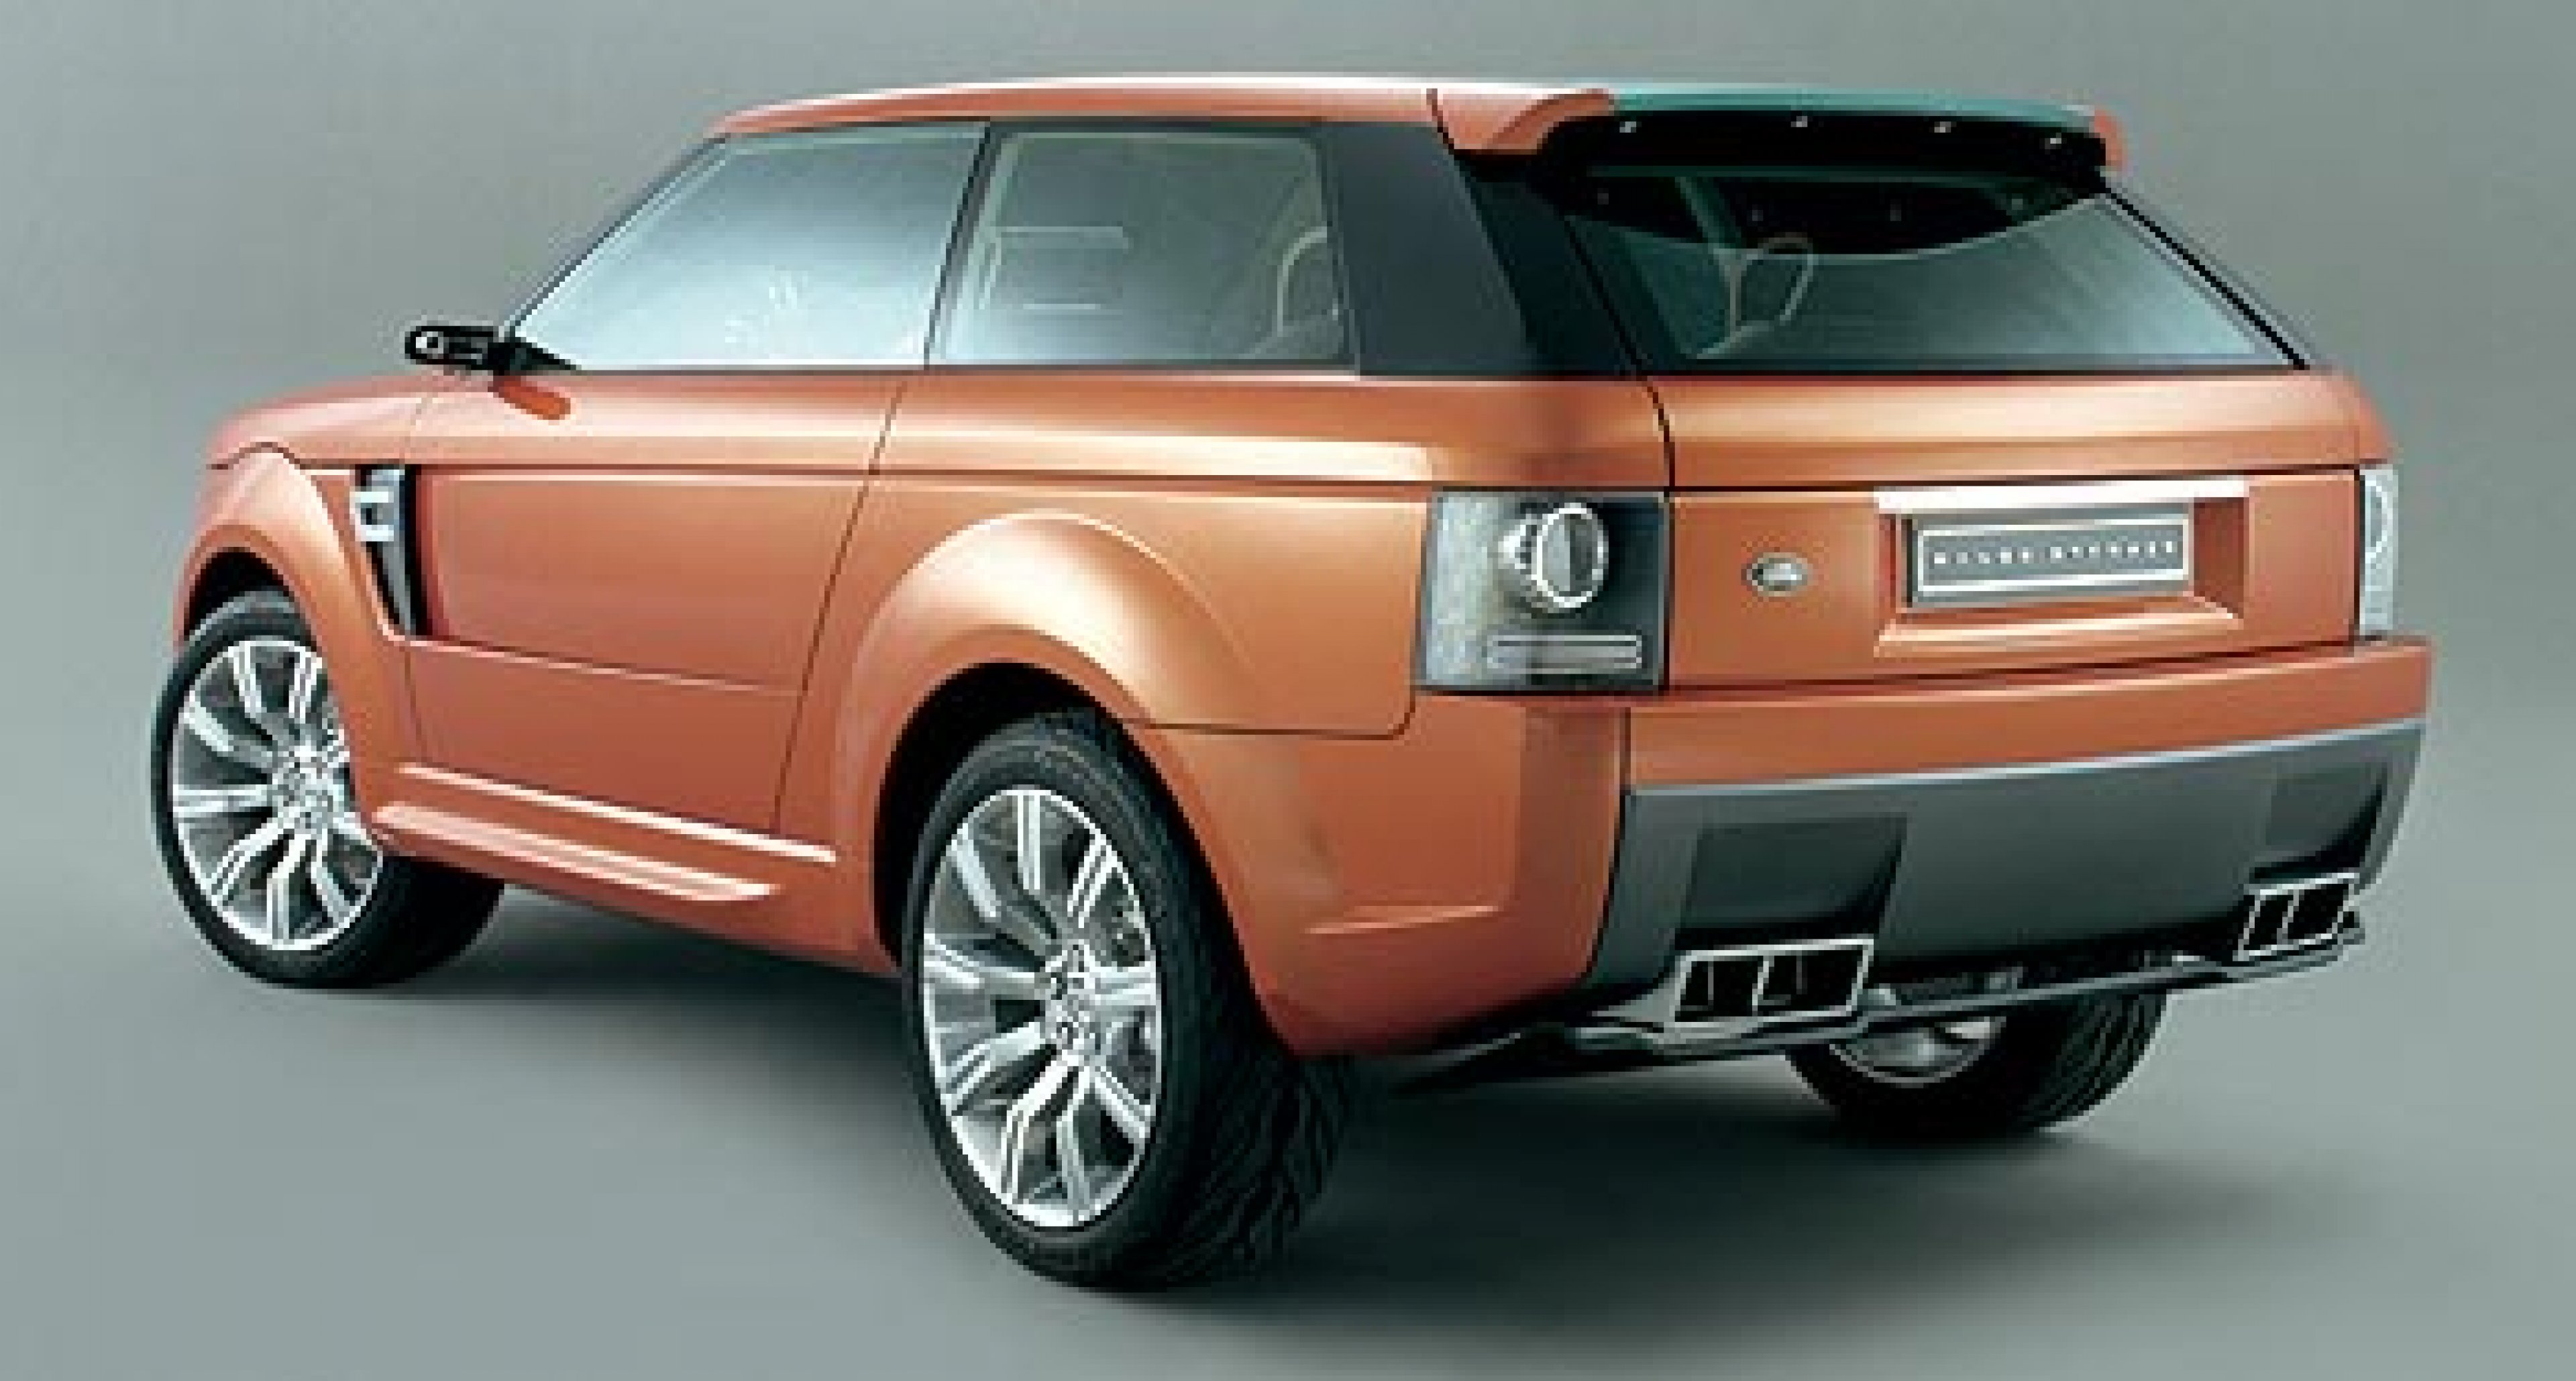 Land Rover unveils first ever concept show car at Detroit Auto Show